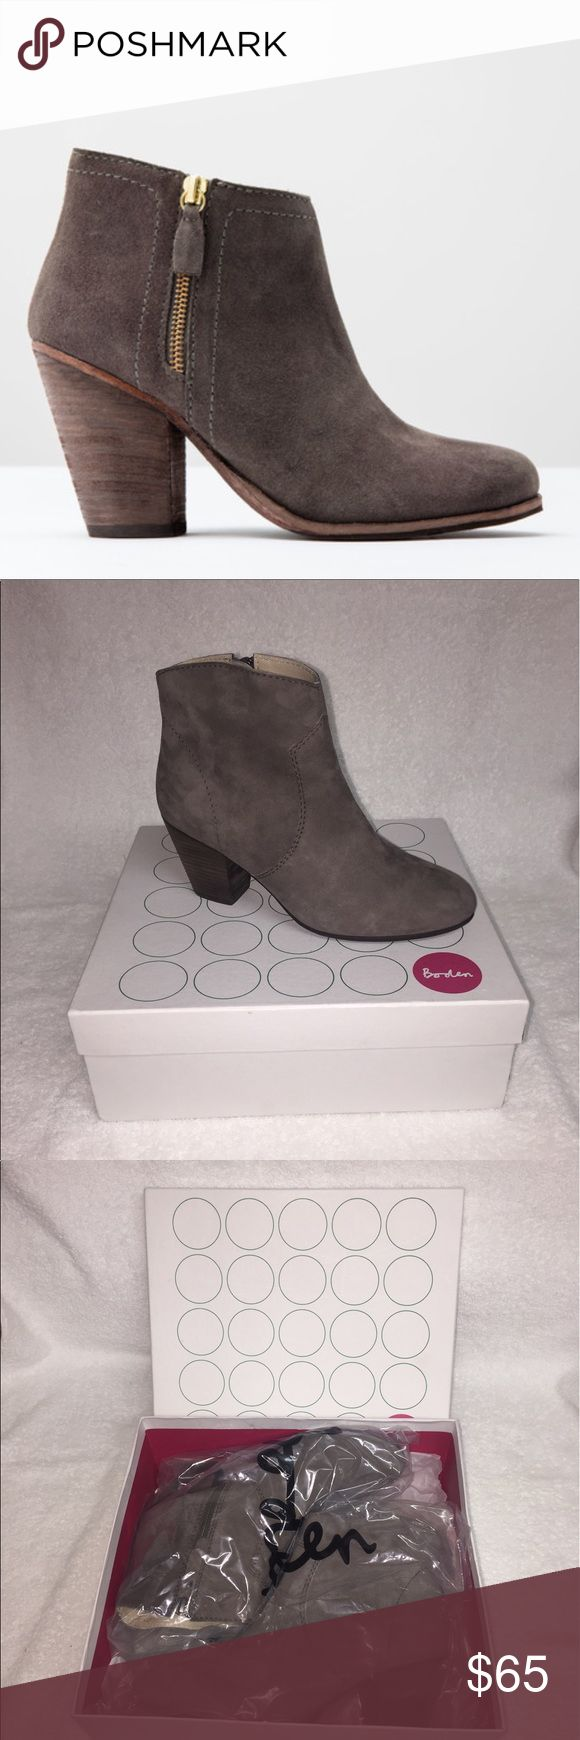 Boden Suede Boho High Heel Ankle Booties with Zip Beautiful Suede Gray Booties with Original Box. They were barely worn and would look perfect with a pair of skinny Jeans. There is a small little stain at the bottom of the right boot (as shown in picture) but is hardly noticeable. Size 9. These fit true to size. Feel free to make me an offer. No trades 🚫 Boden Shoes Ankle Boots & Booties